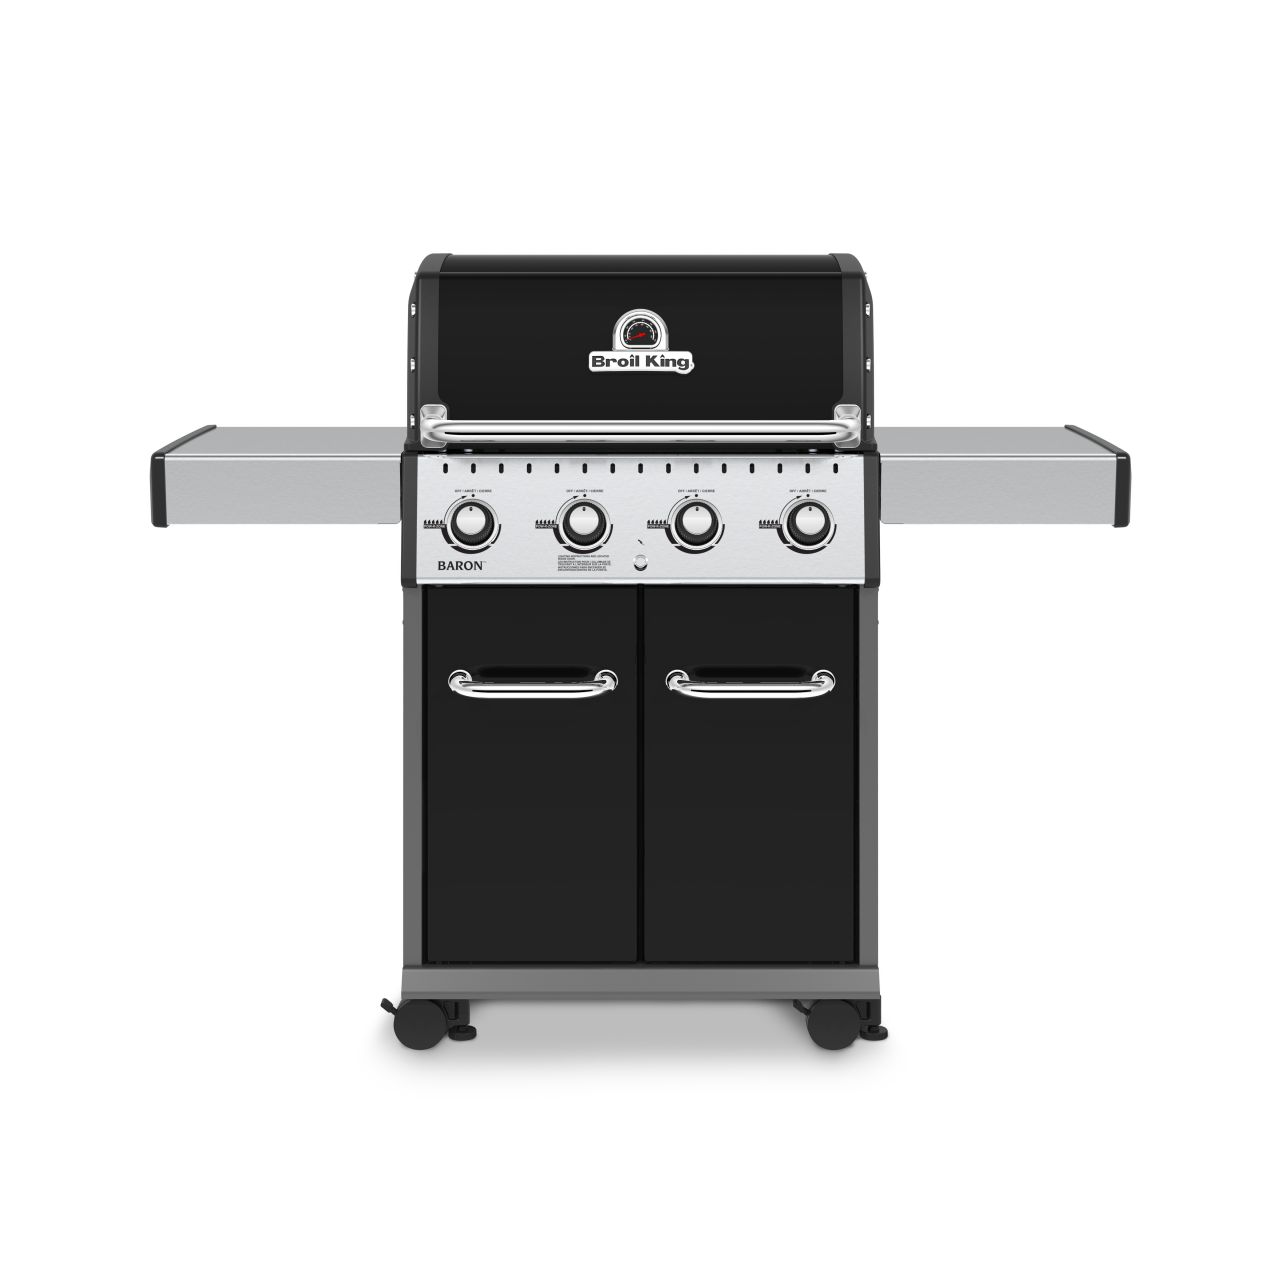 Broil King Baron 420, Black